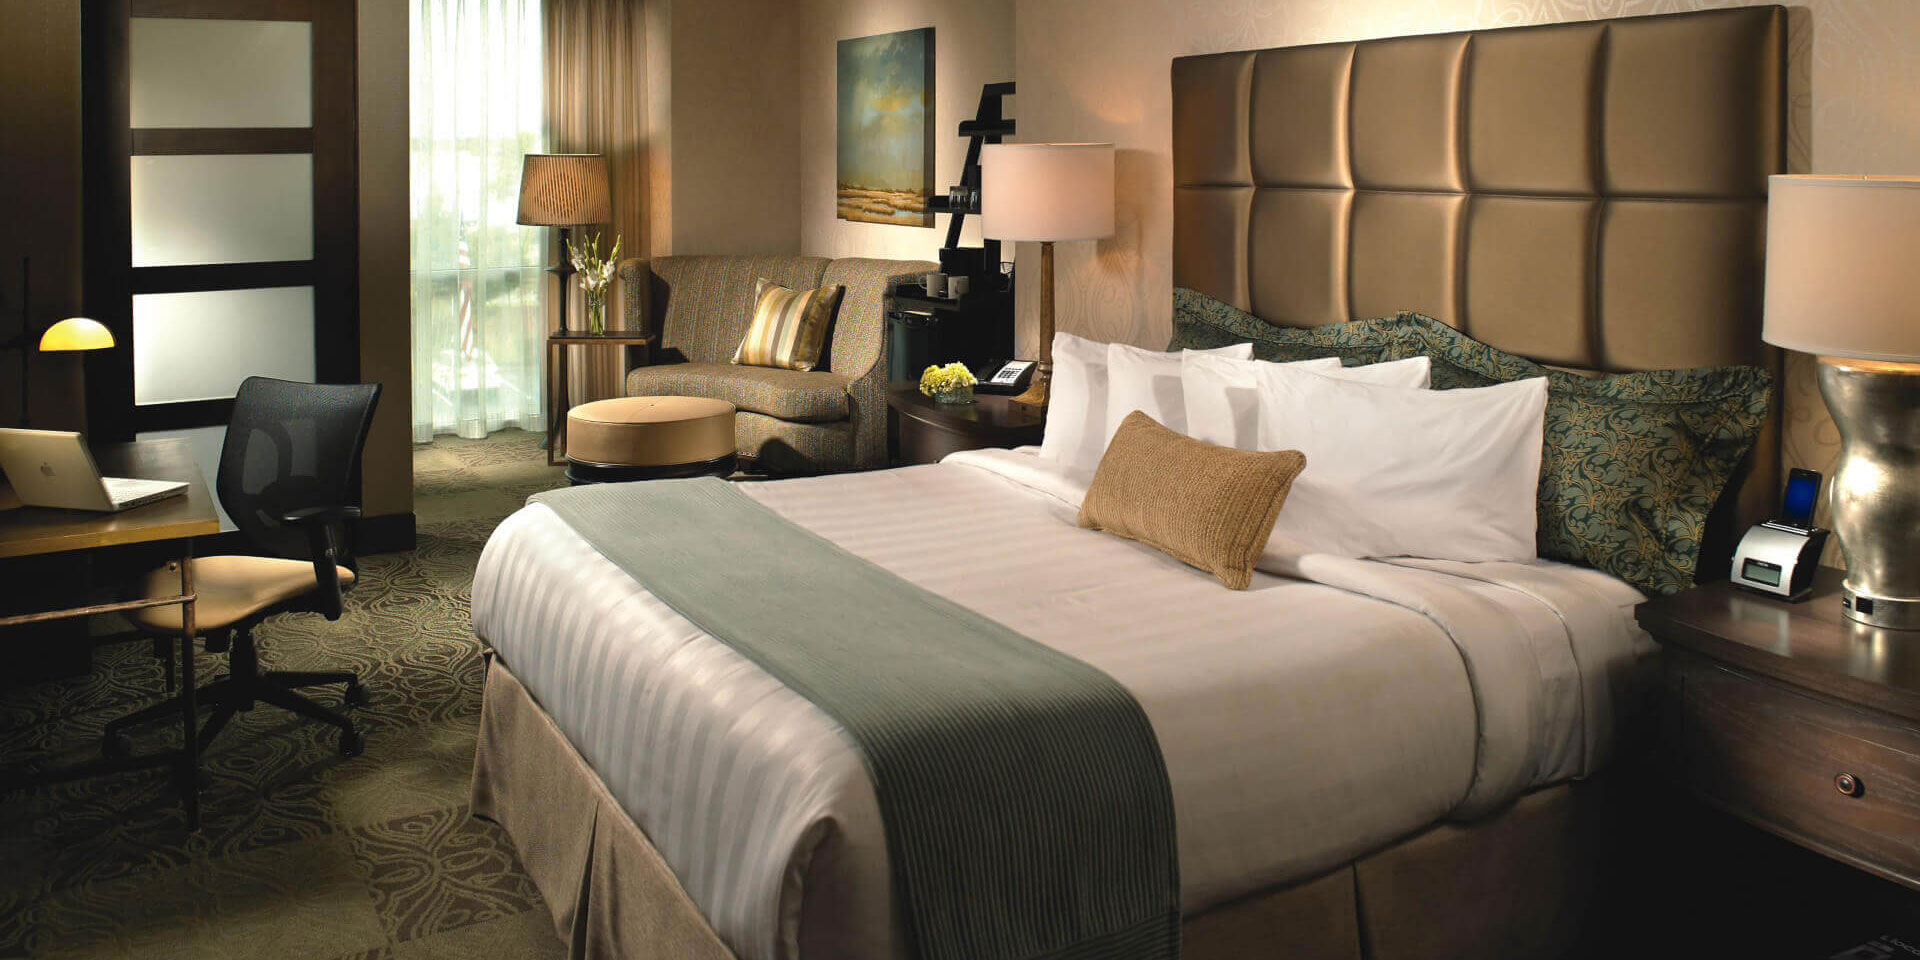 Peachtree Hotel Group (PHG) completes 2017 with approximately $200 million in new acquisitions and developments